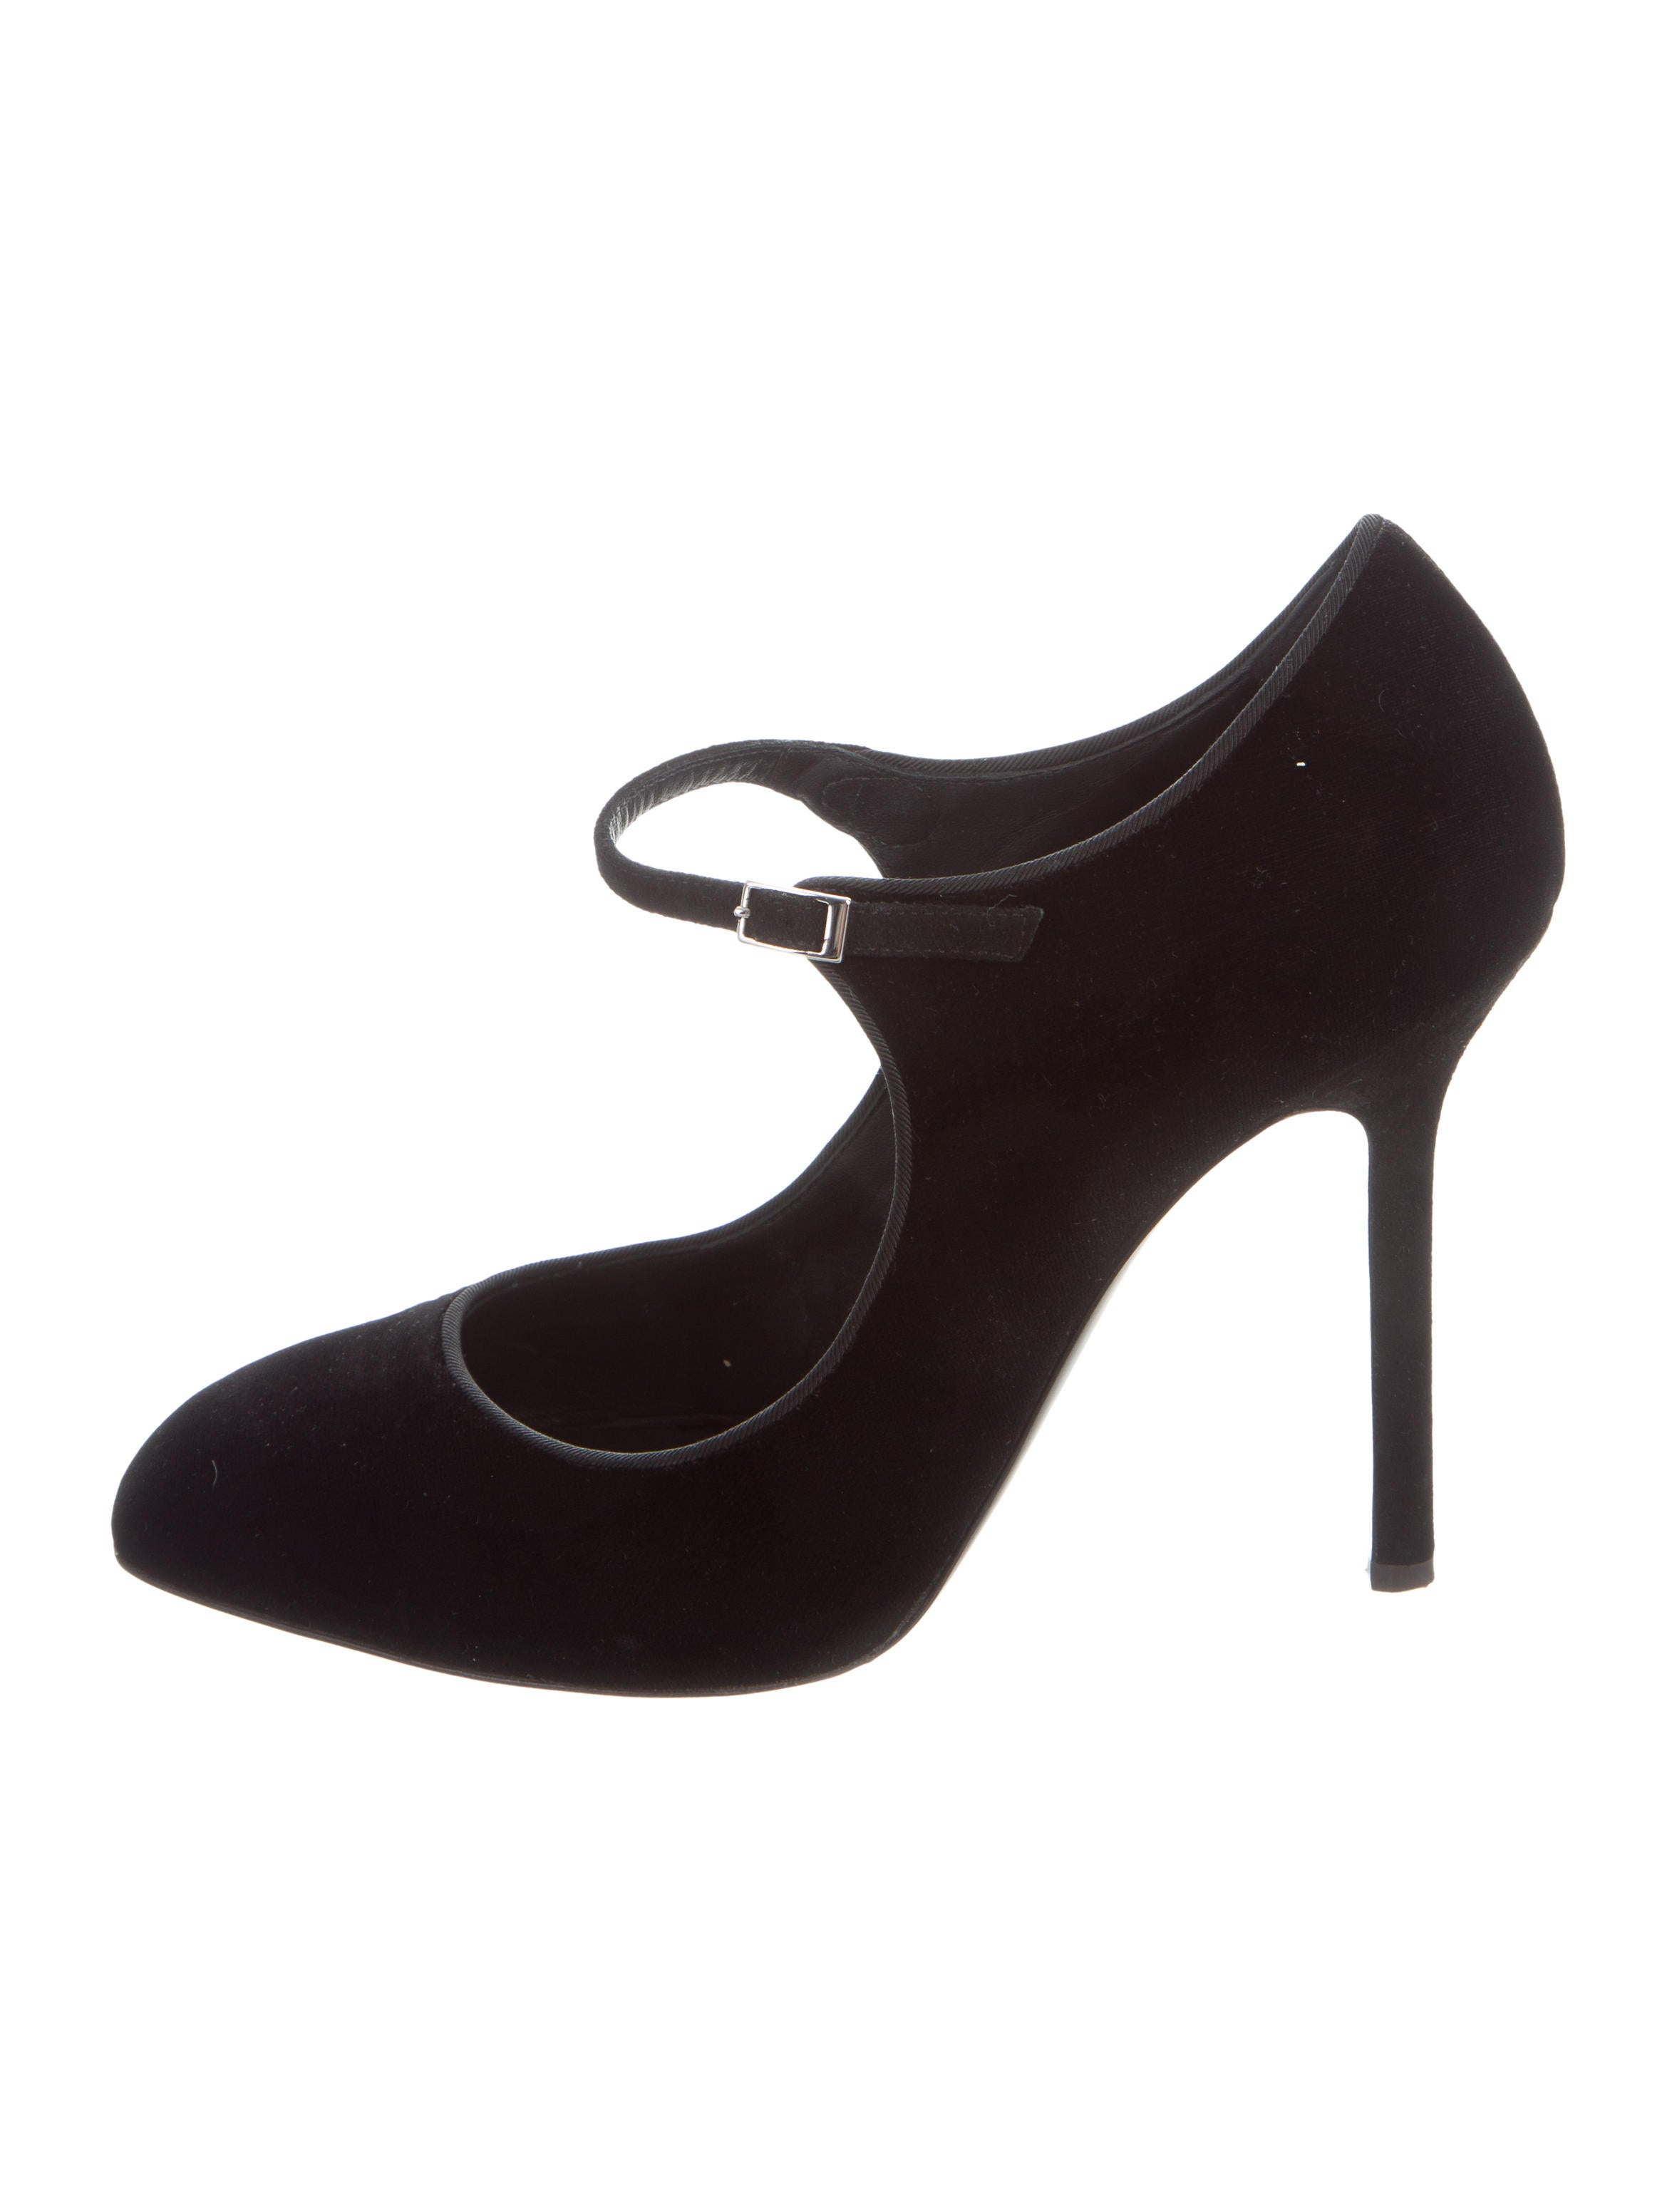 Giuseppe Zanotti Suede Mary Jane Pumps buy cheap get authentic izHqxUhY9